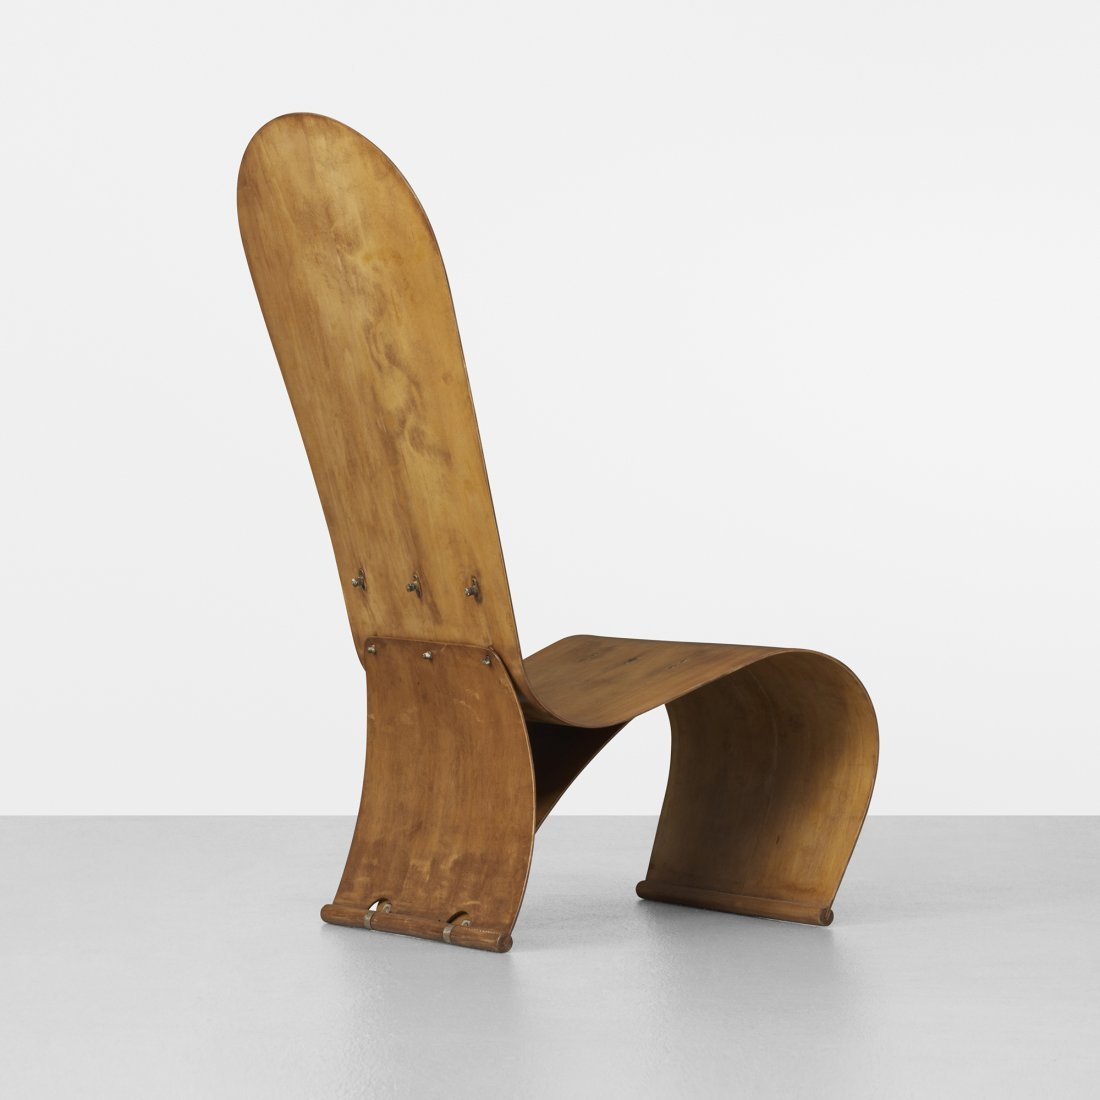 206: H.V. Thaden Plywood chair